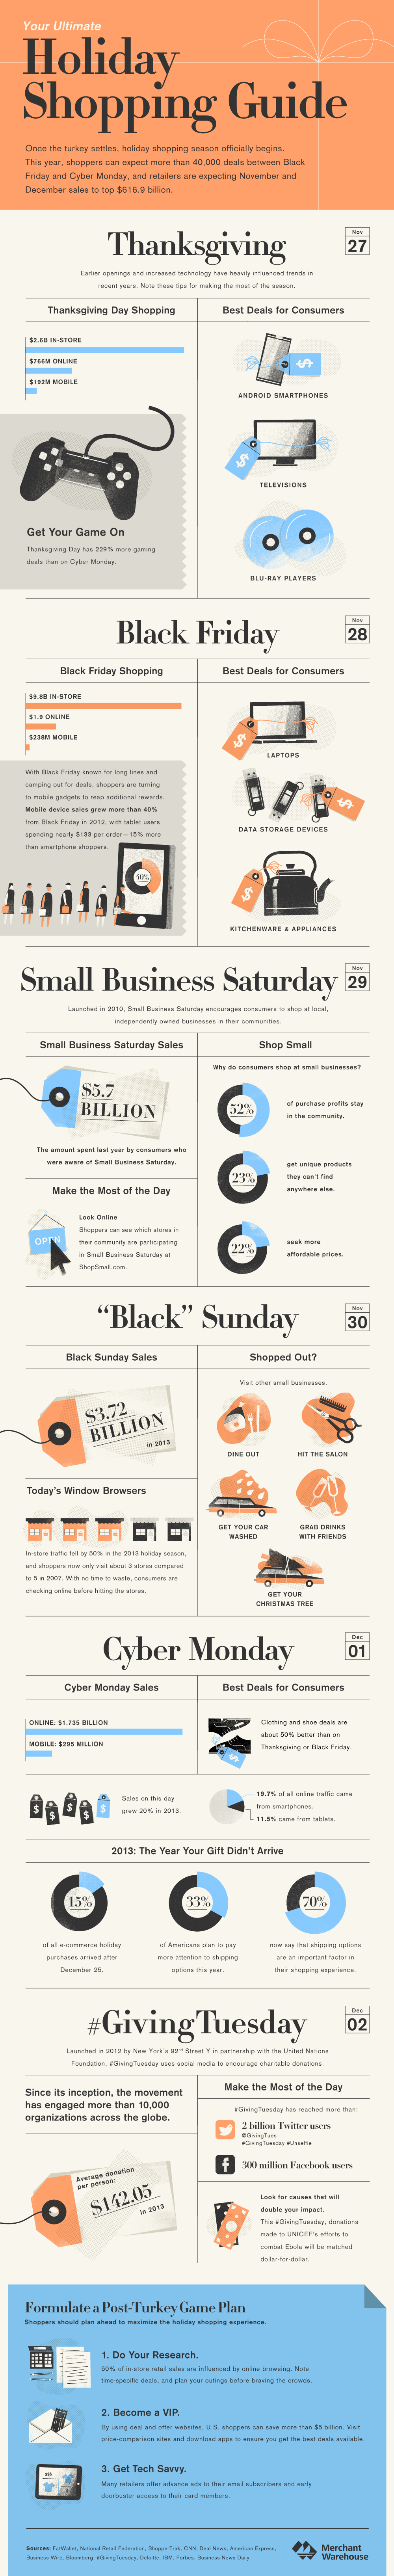 Infographic: Your Ultimate Holiday Shopping Guide